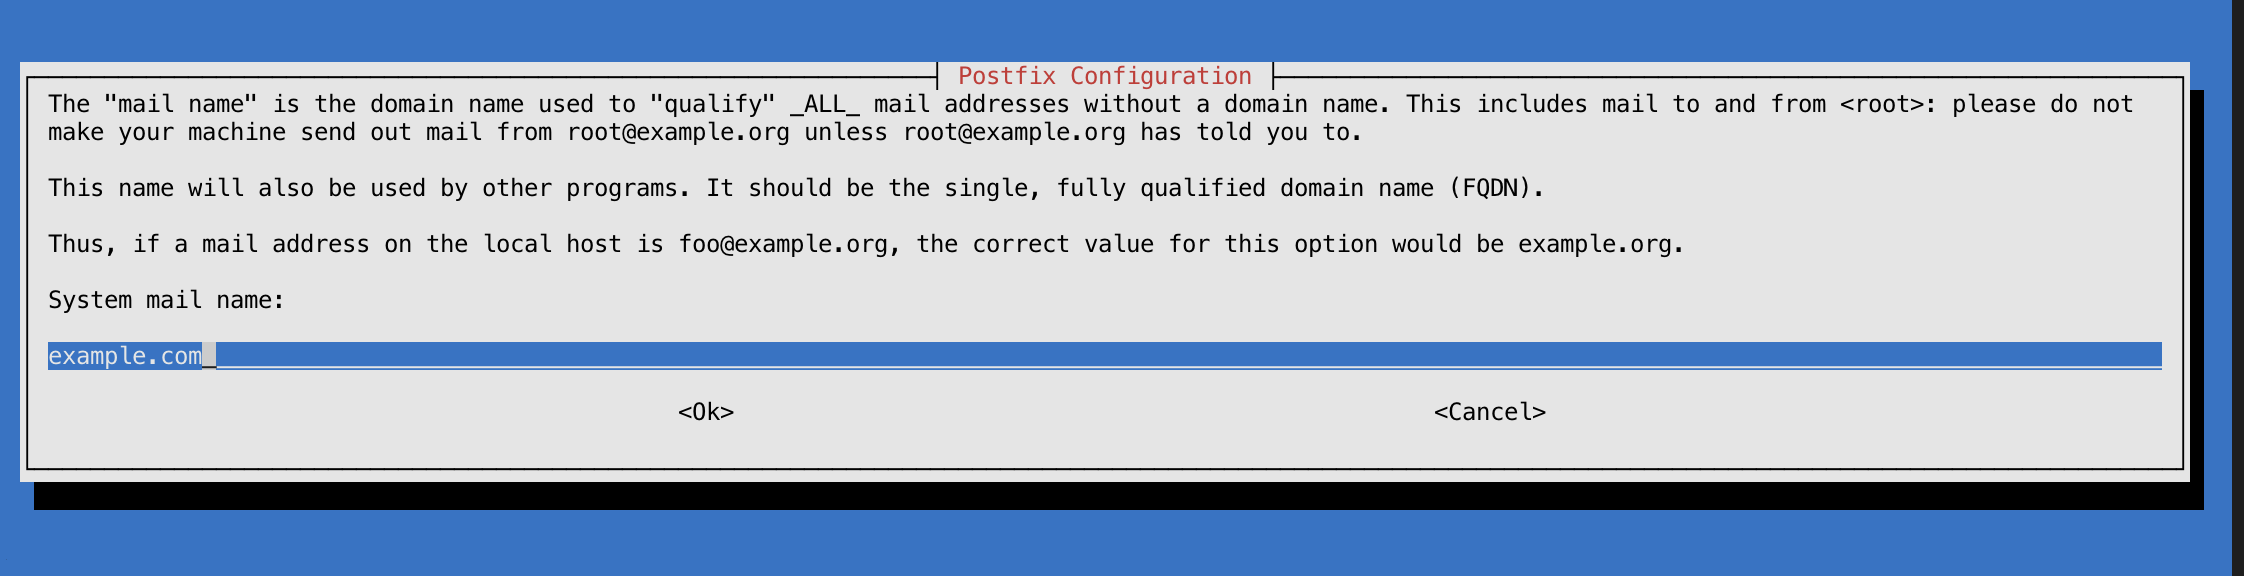 System Mail Name Selection